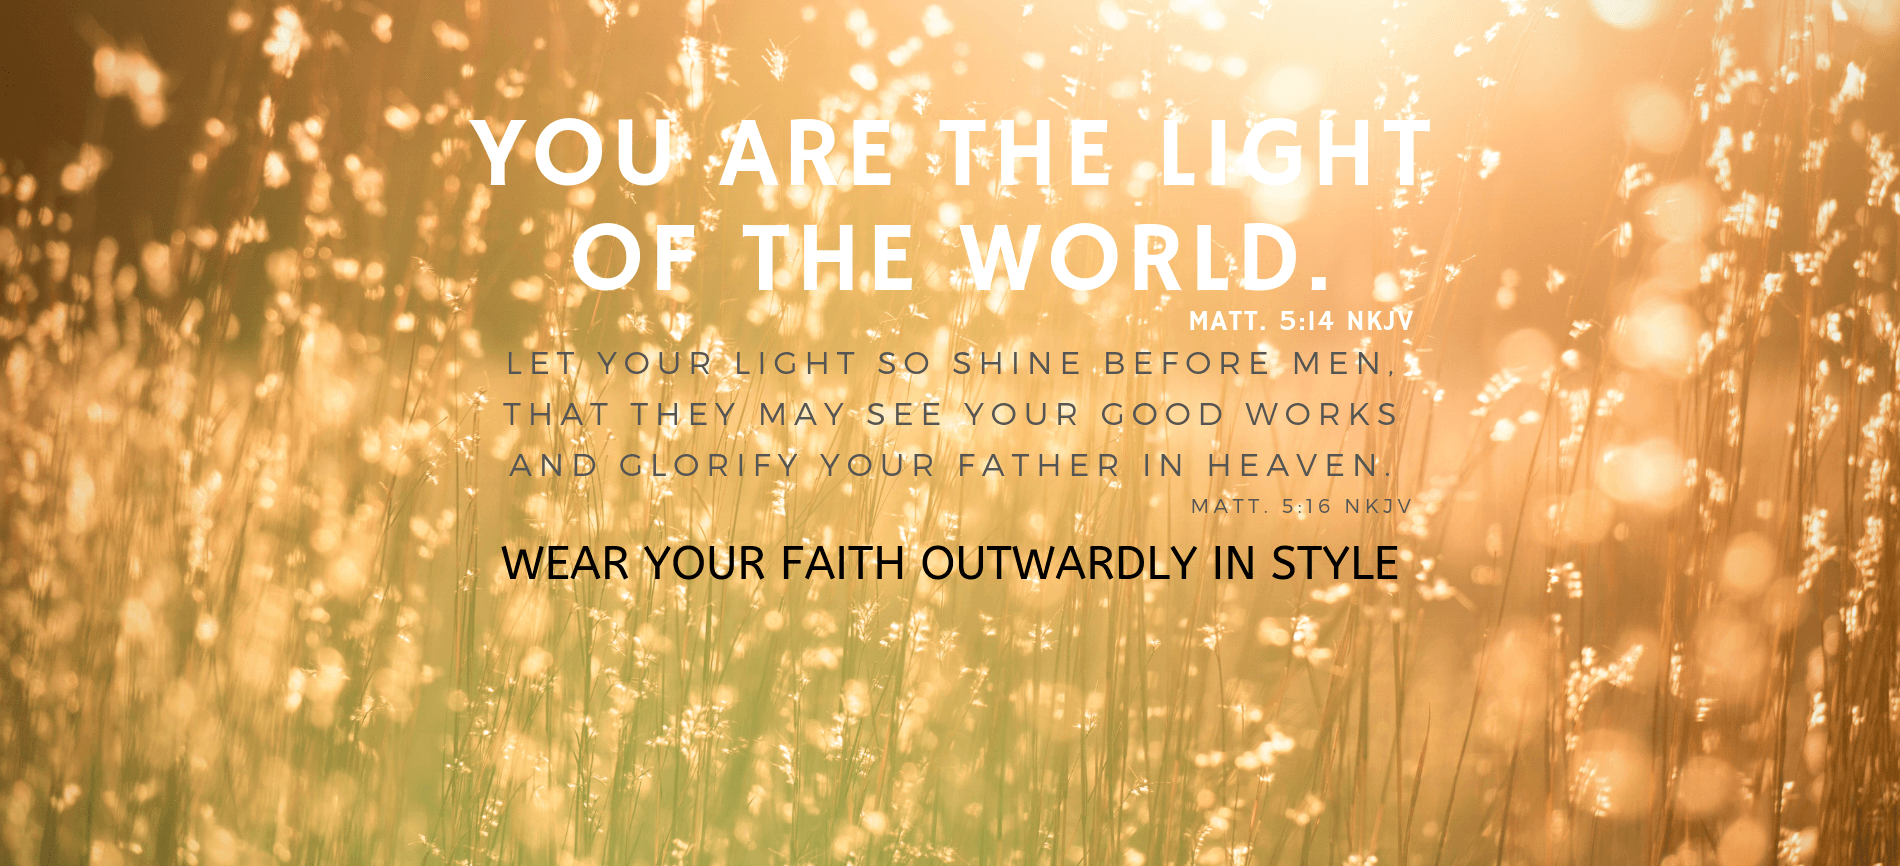 You are the light of the world. Unctionclothing.com